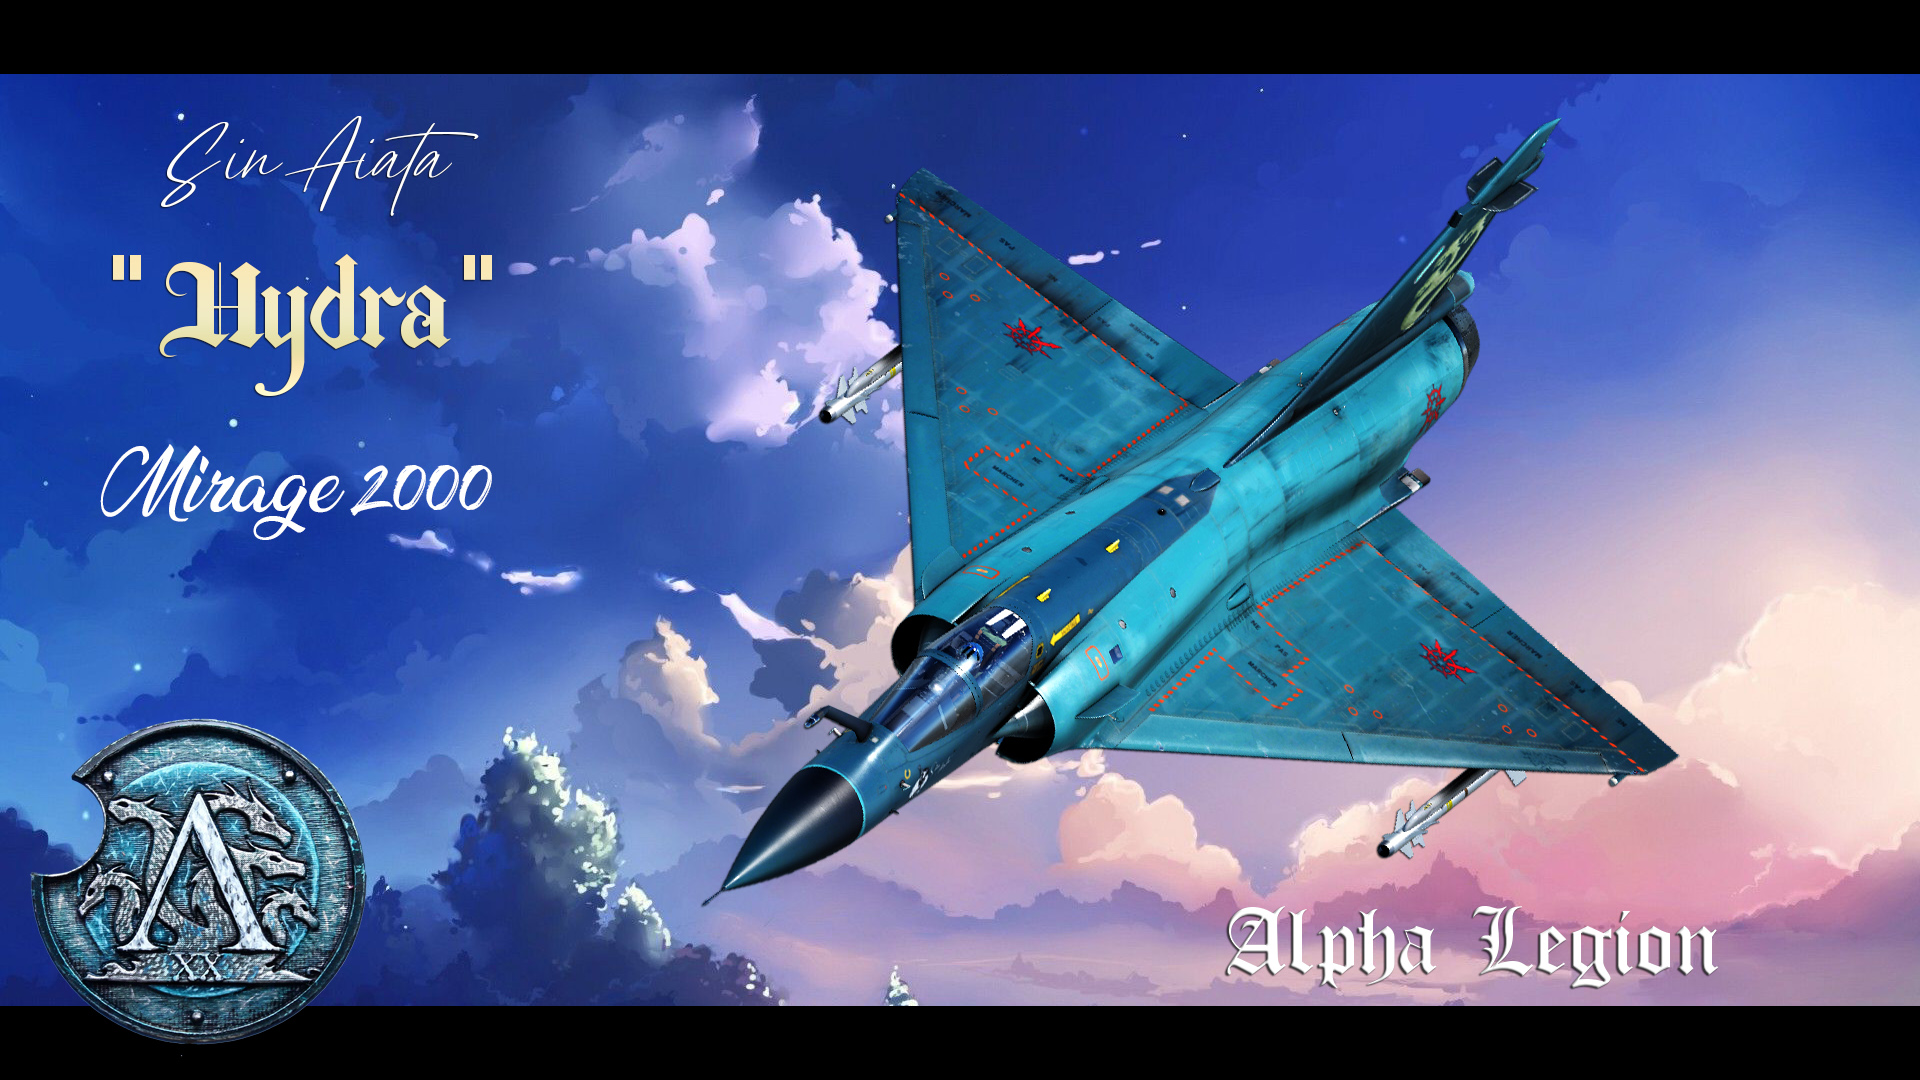 Mirage 2000 - Sin Aiata - Hydra Alpha Legion skin [FICTIONNAL] V3.9